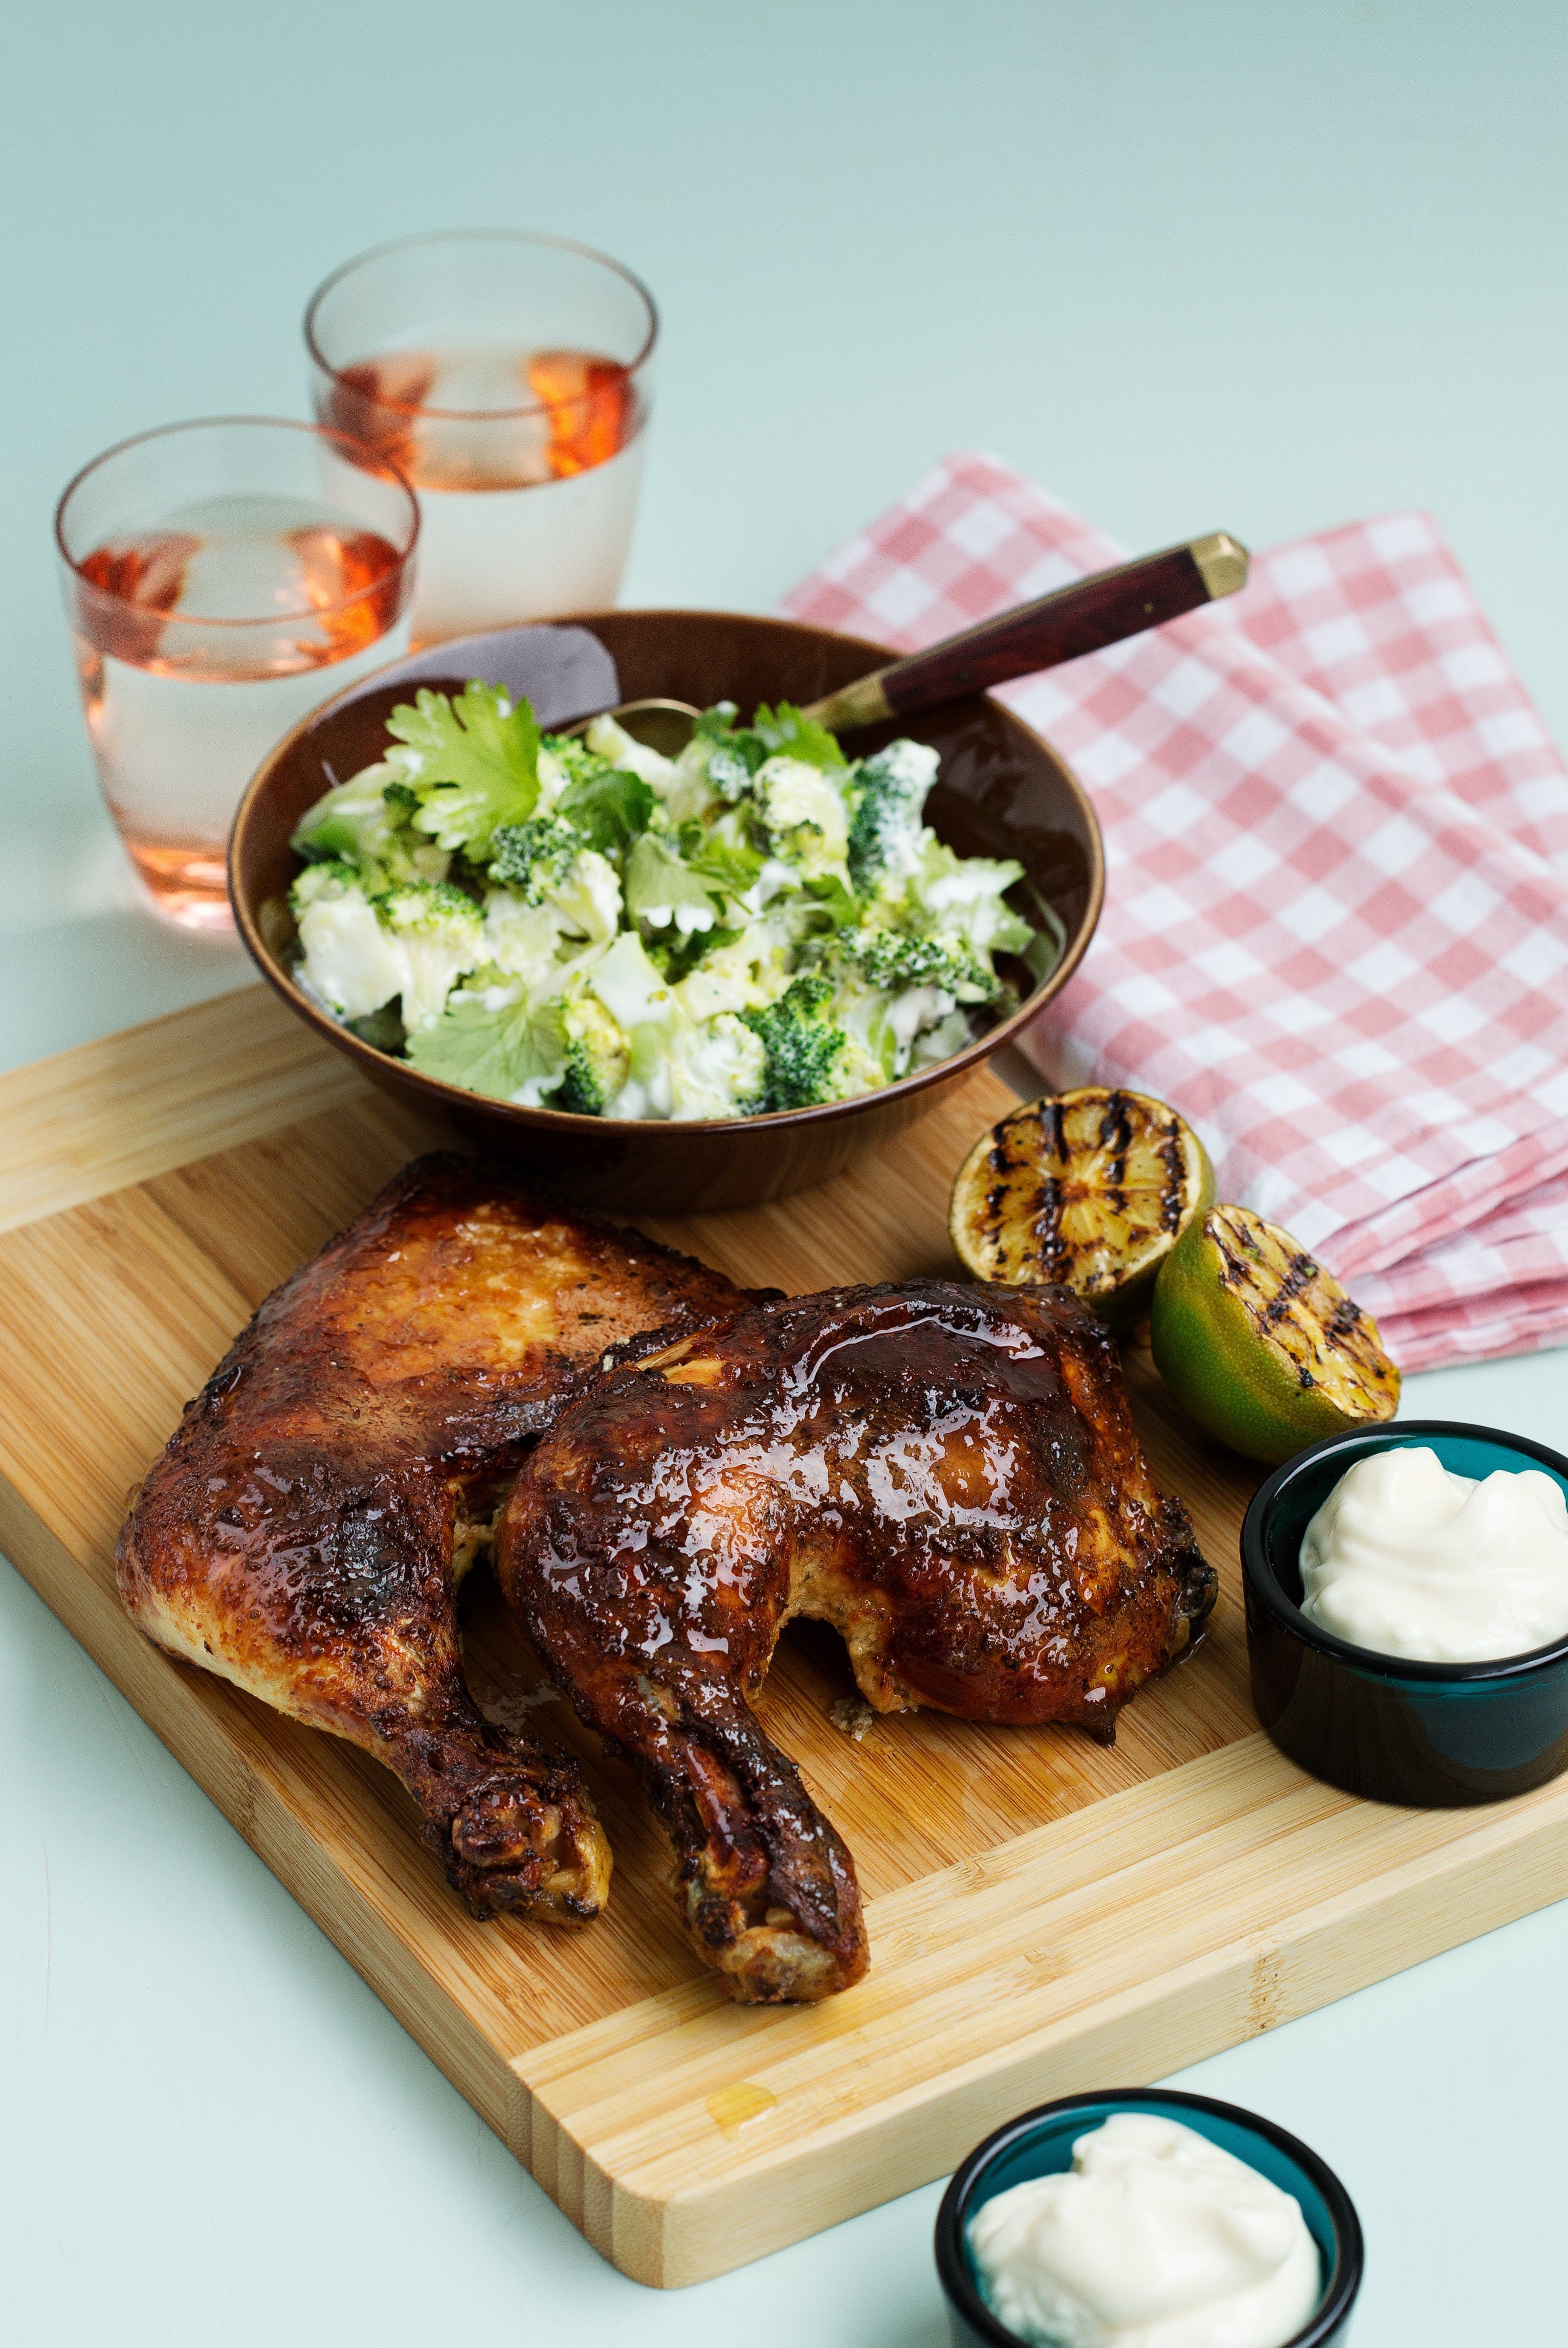 Slow-cooked chicken with broccoli salad